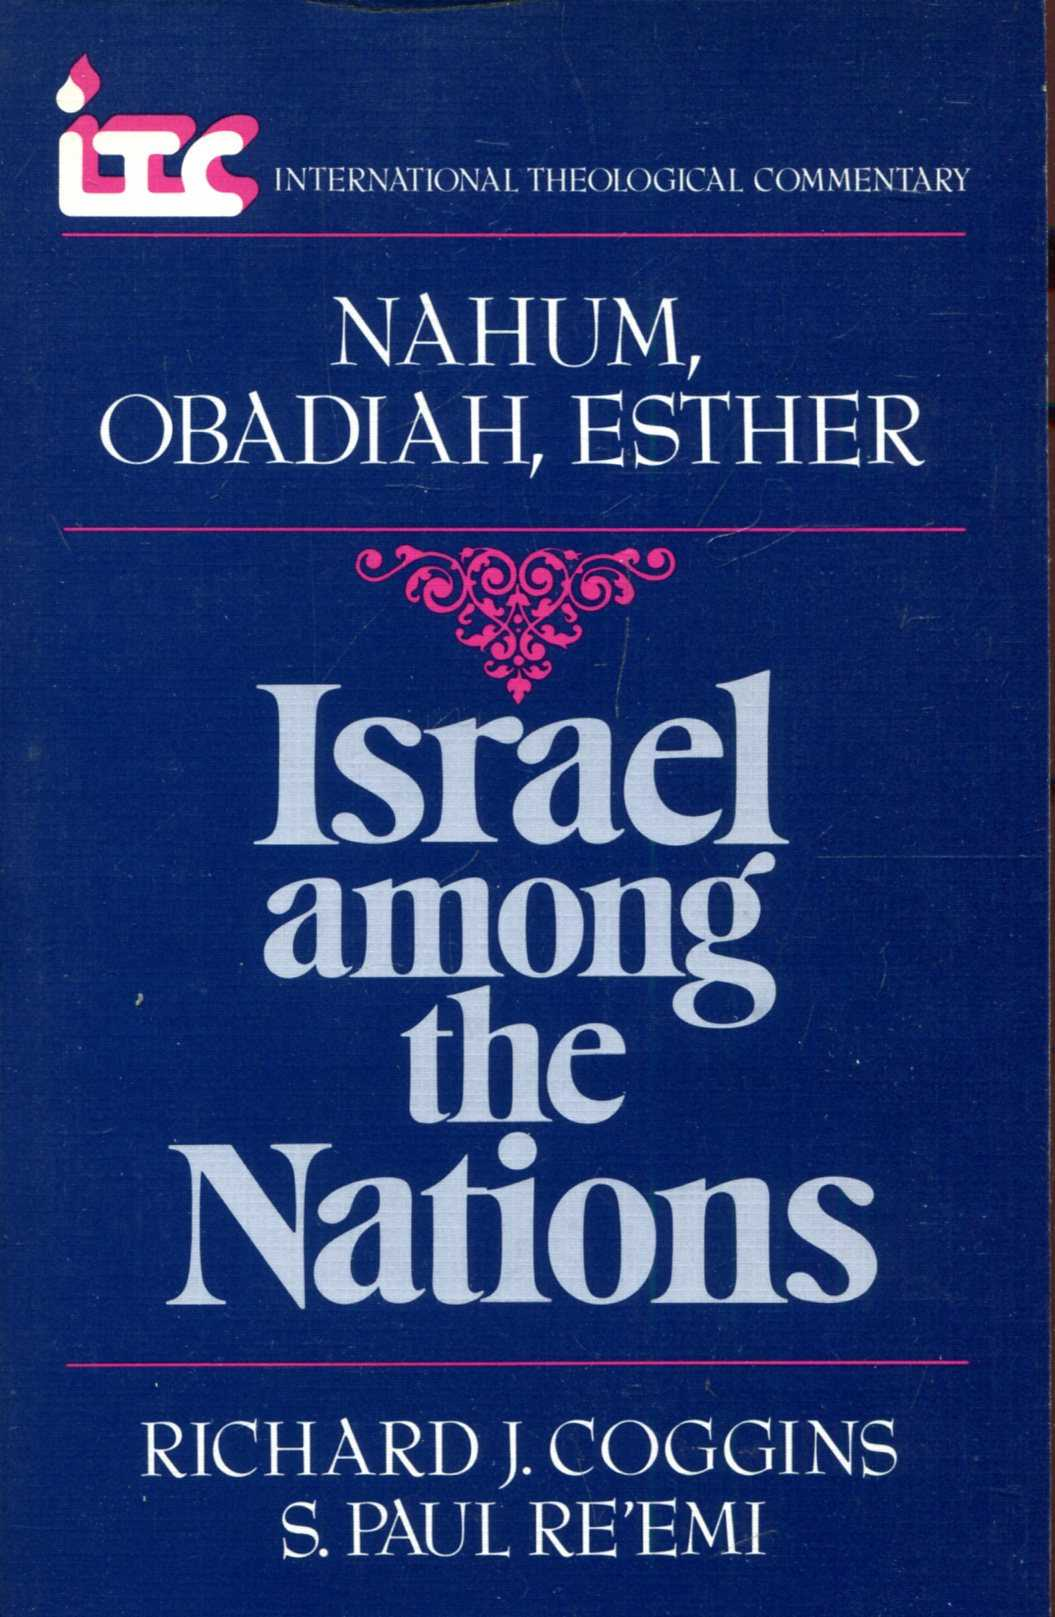 Image for Israel Among the Nations : A Commentary on the Books of Nahum, Obadiah, Esther (International Theological Commentary)